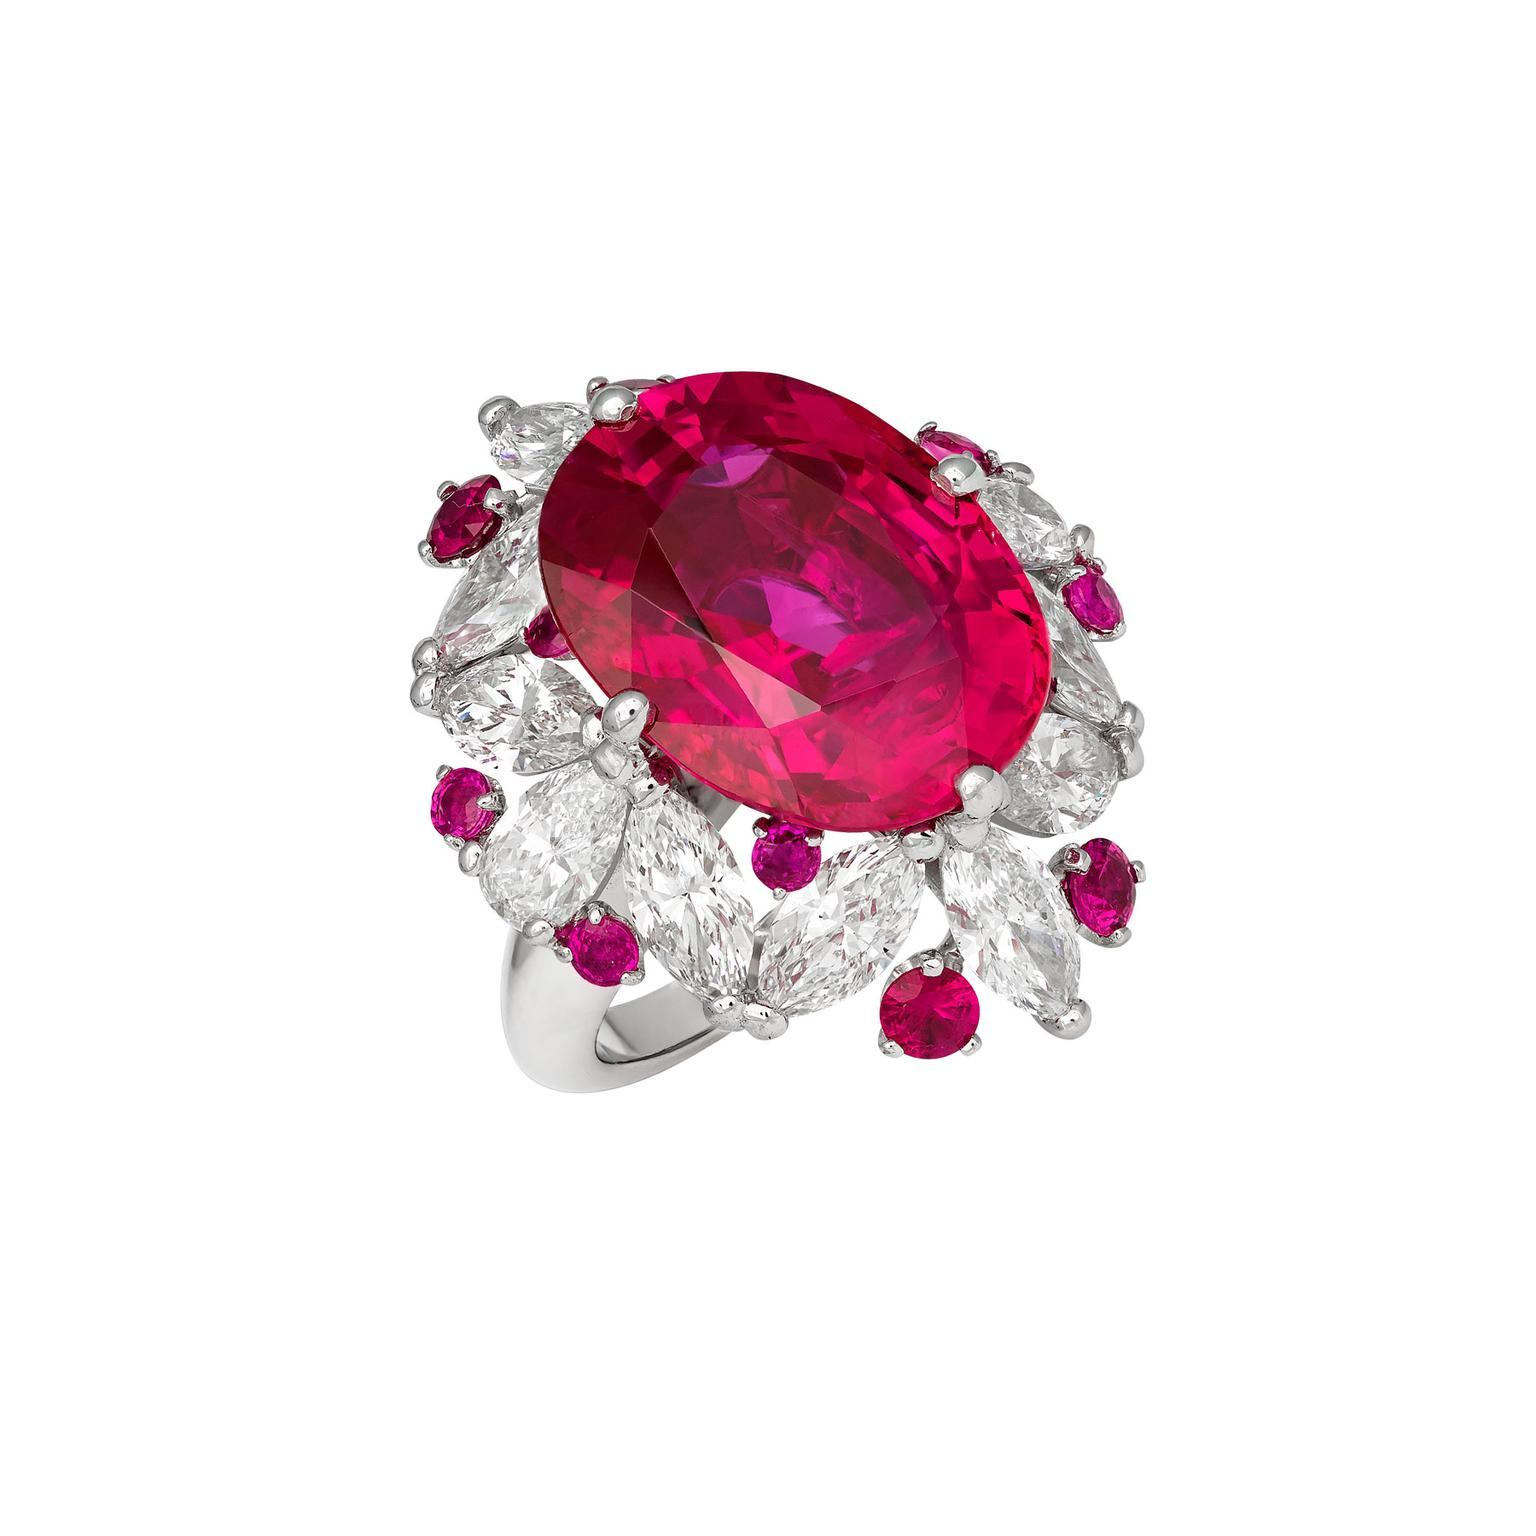 David Morris Sunset ruby ring